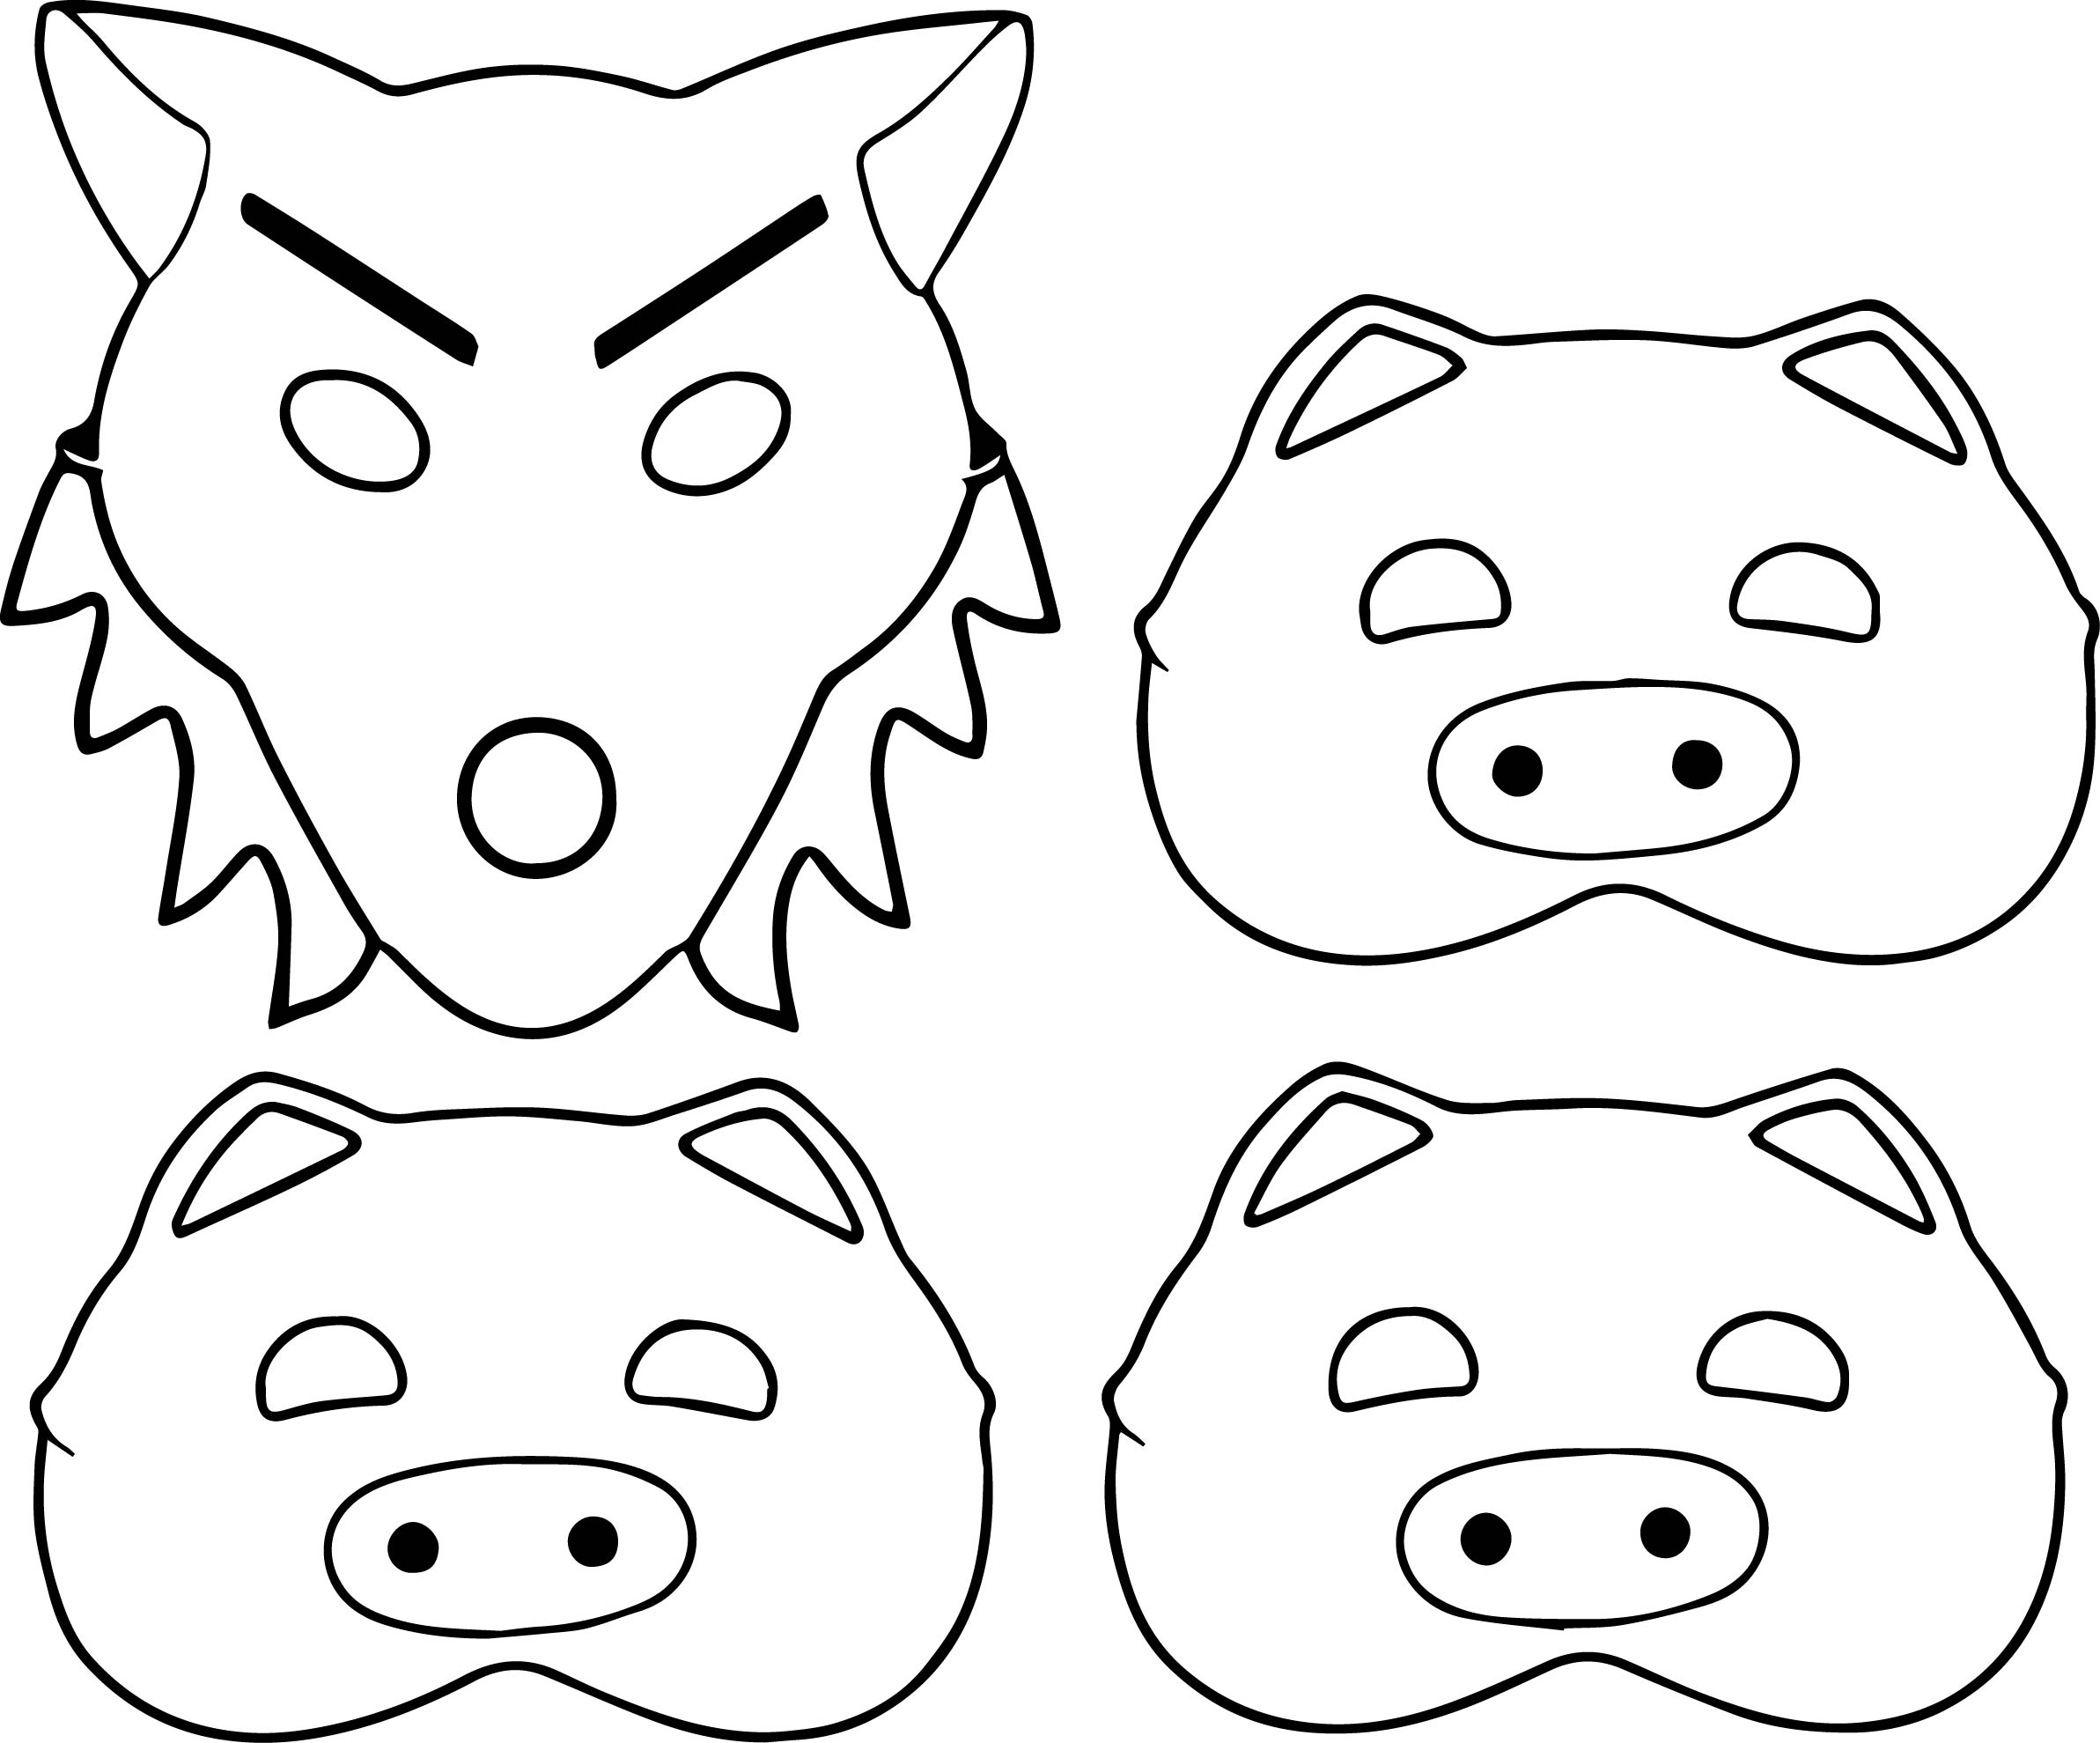 Coloring pages 3 little pigs - 3 Little Pigs And Wolf Mask Coloring Page